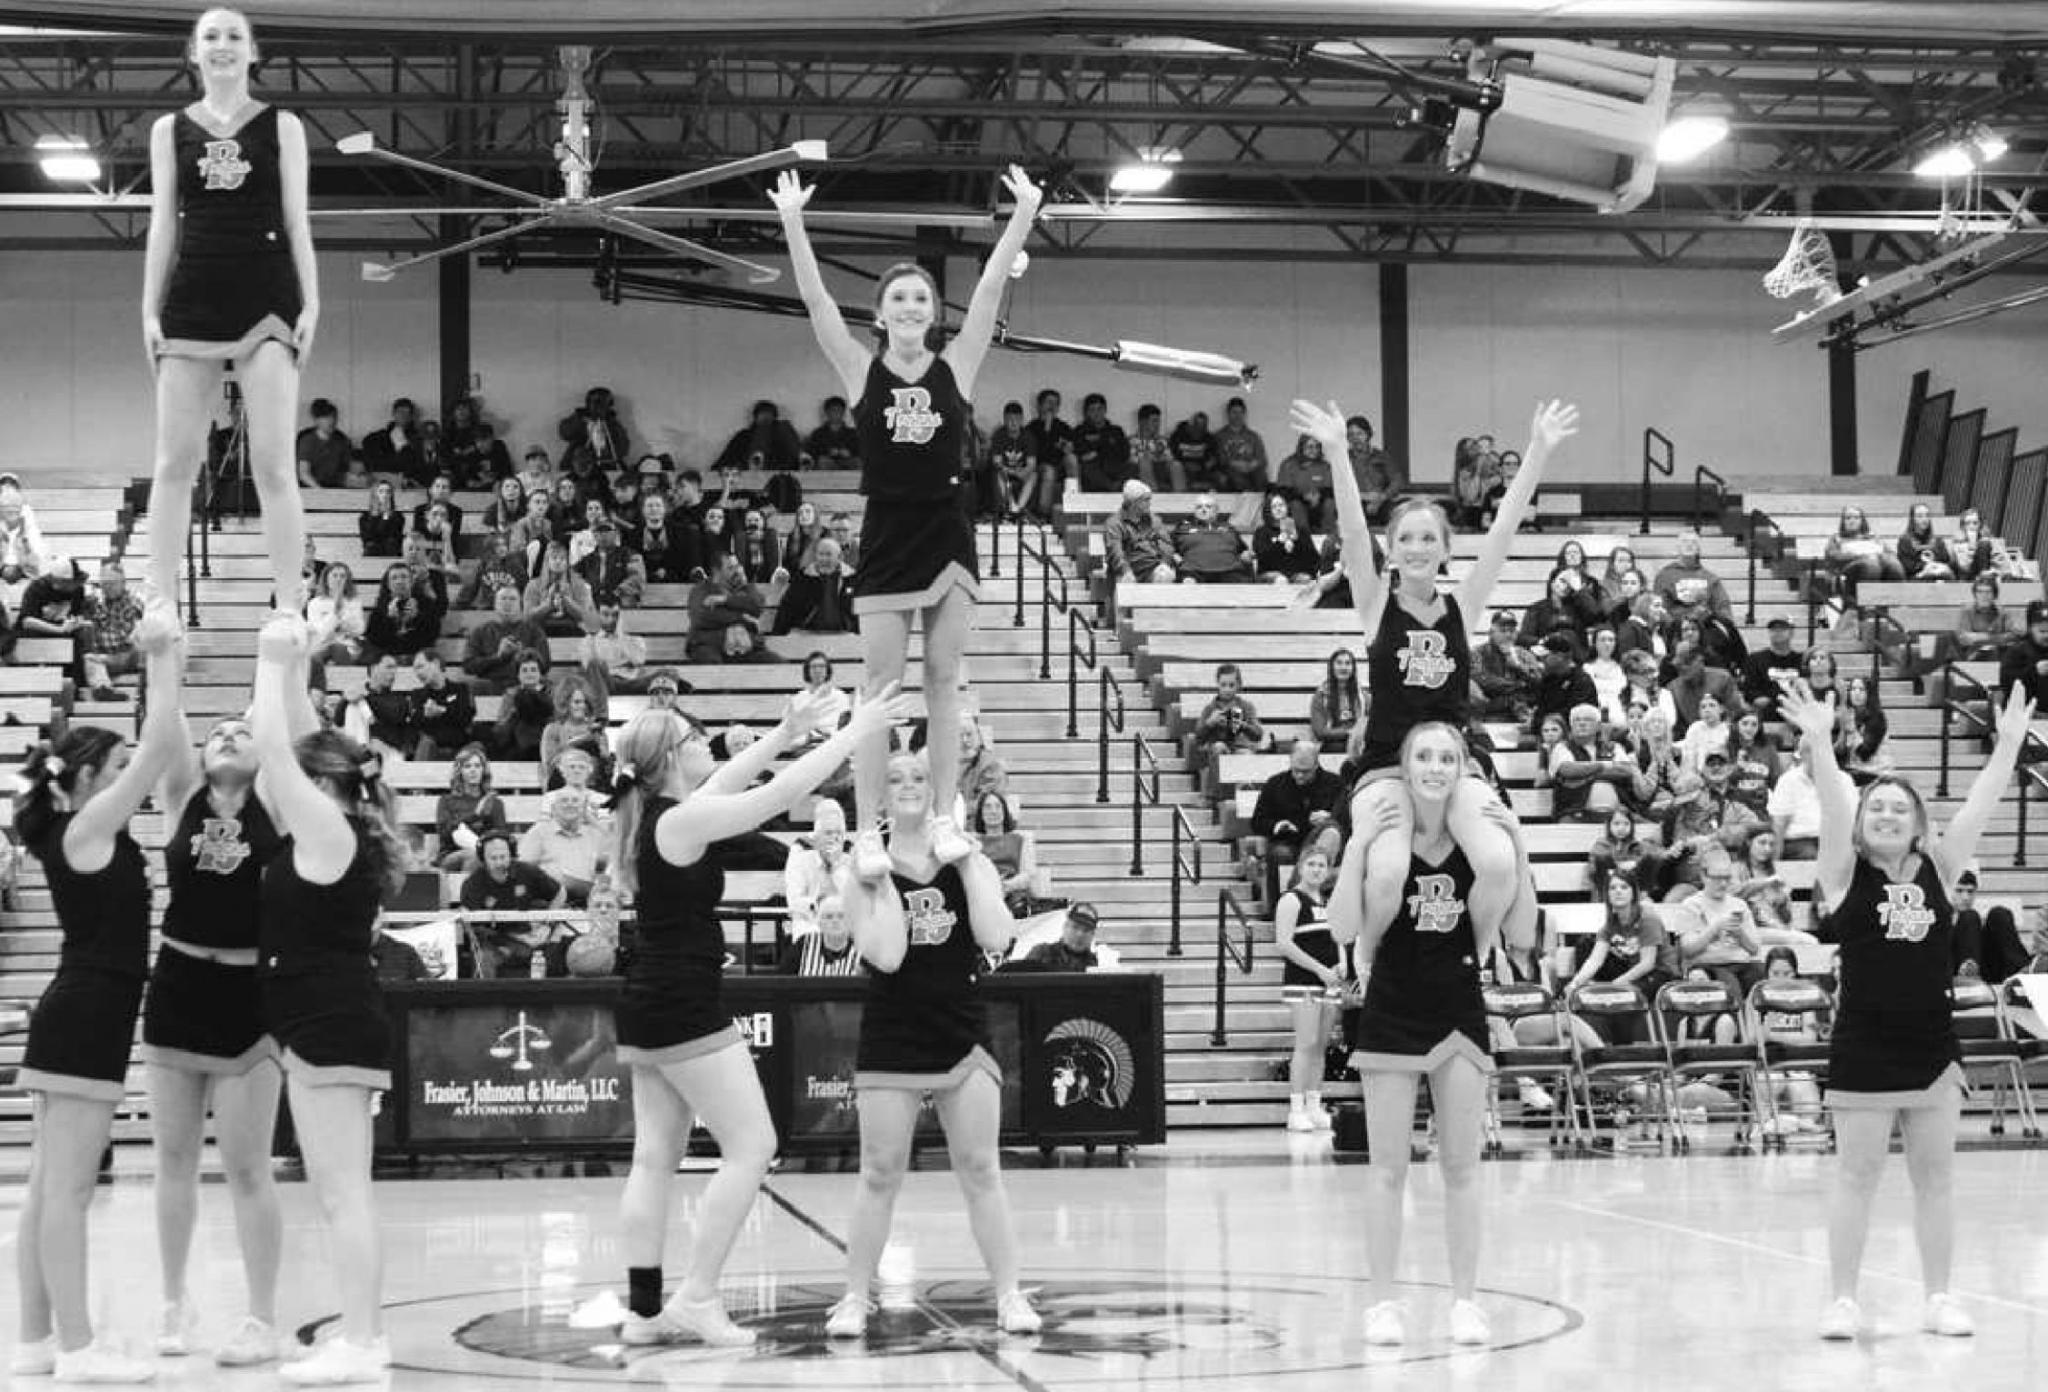 Beloit Cheerleaders, from left to right: Hannah Thiessen, Sage Schwerman, Niki Emerson, (Keighlee Armstrong atop), Ulexus Weaver, Darby Odle, (Kennedy Adams atop), Chloe Odle, Karody Kadel, and Taylor Monty cheer on their Beloit Trojans basketball teams i